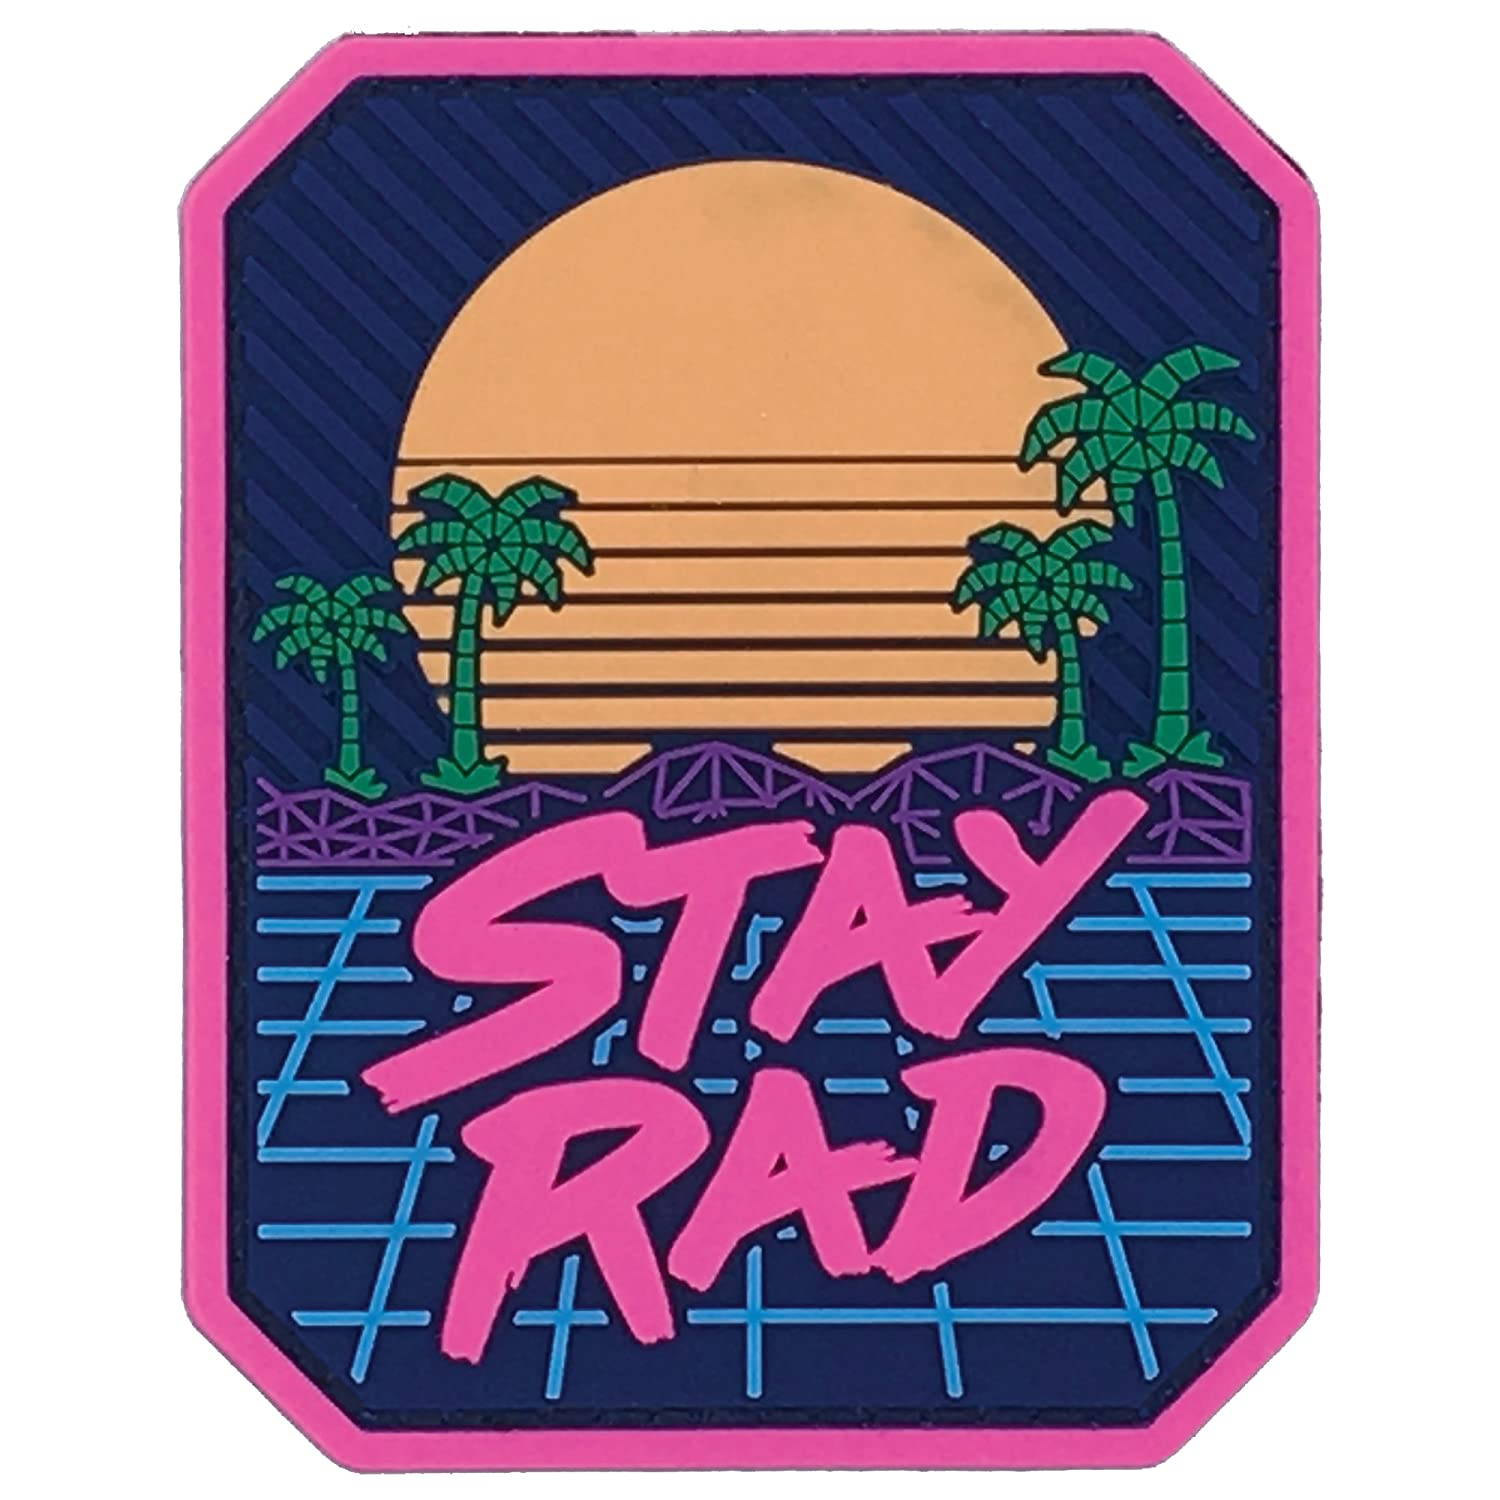 Stay Rad PVC Patch (Full Color) Mil-Spec Monkey 4337020630